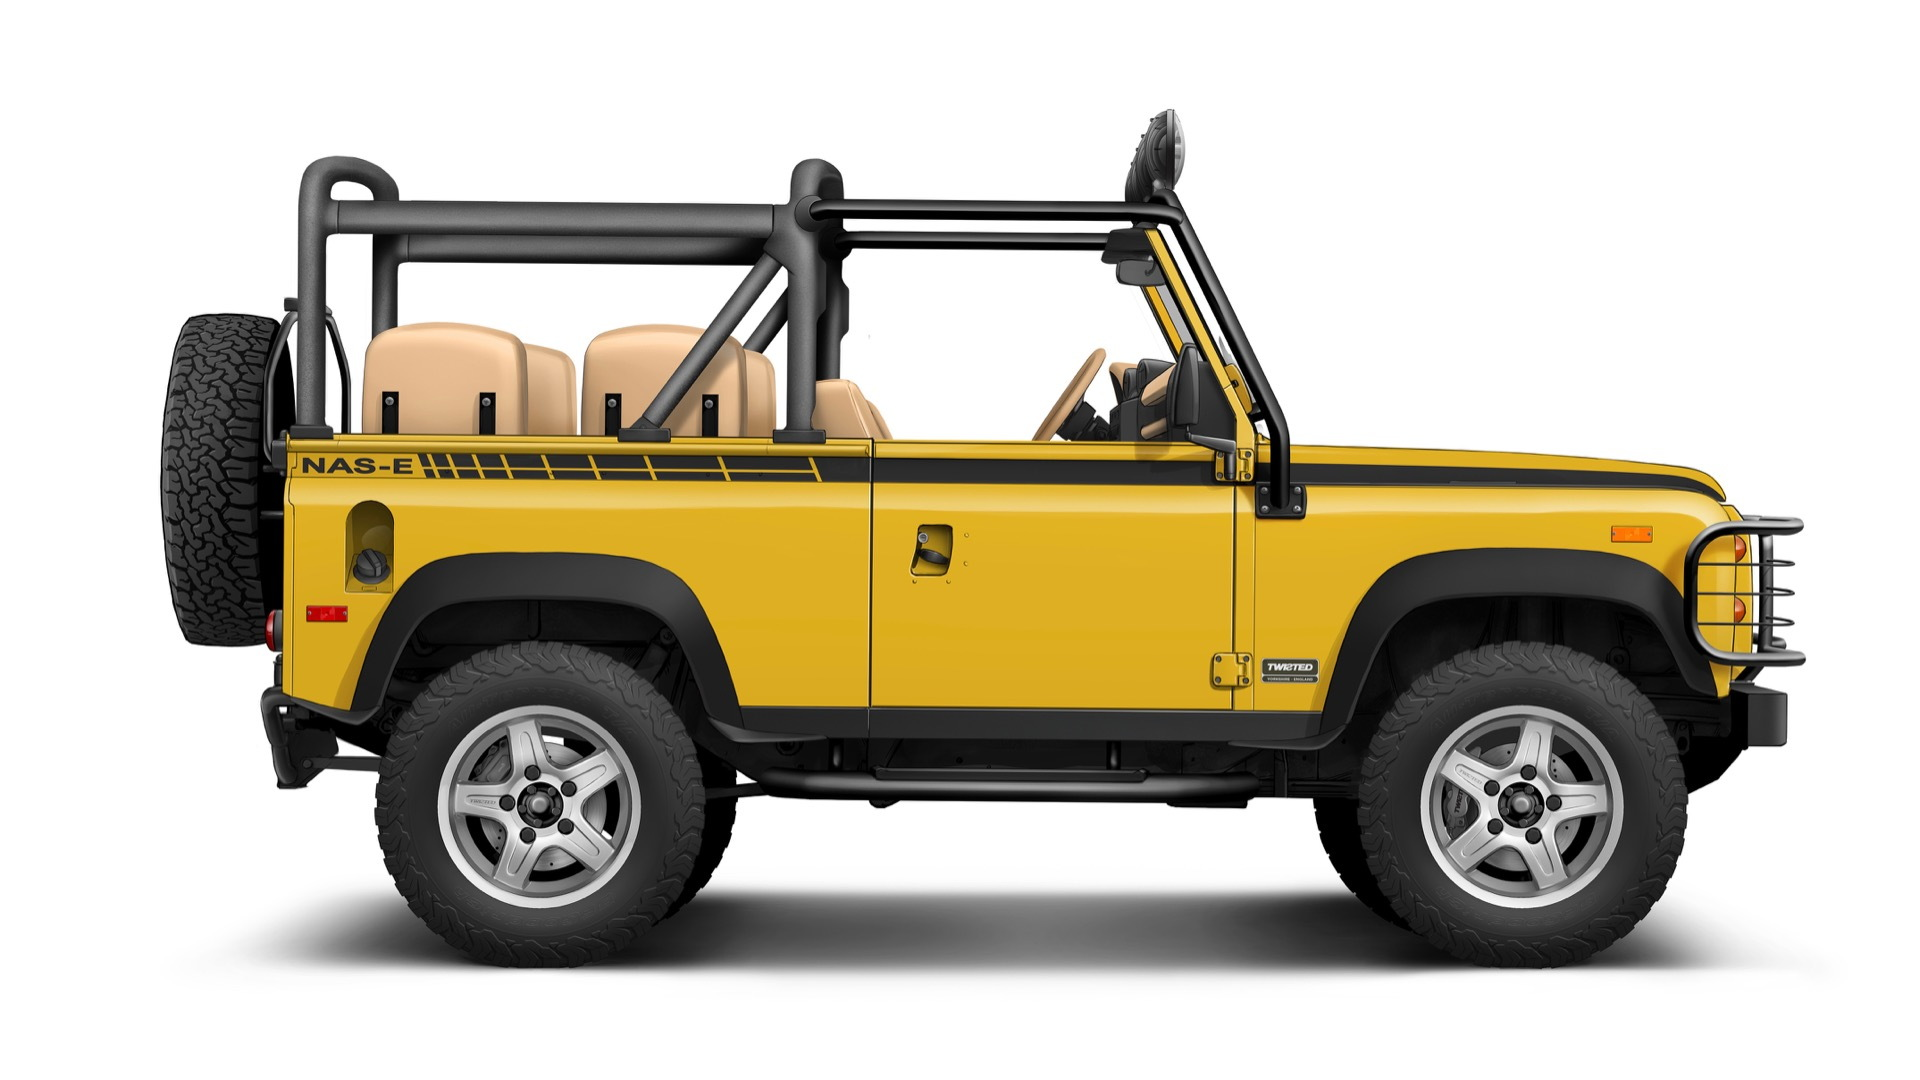 Twisted NAS-E electric Land Rover Defender